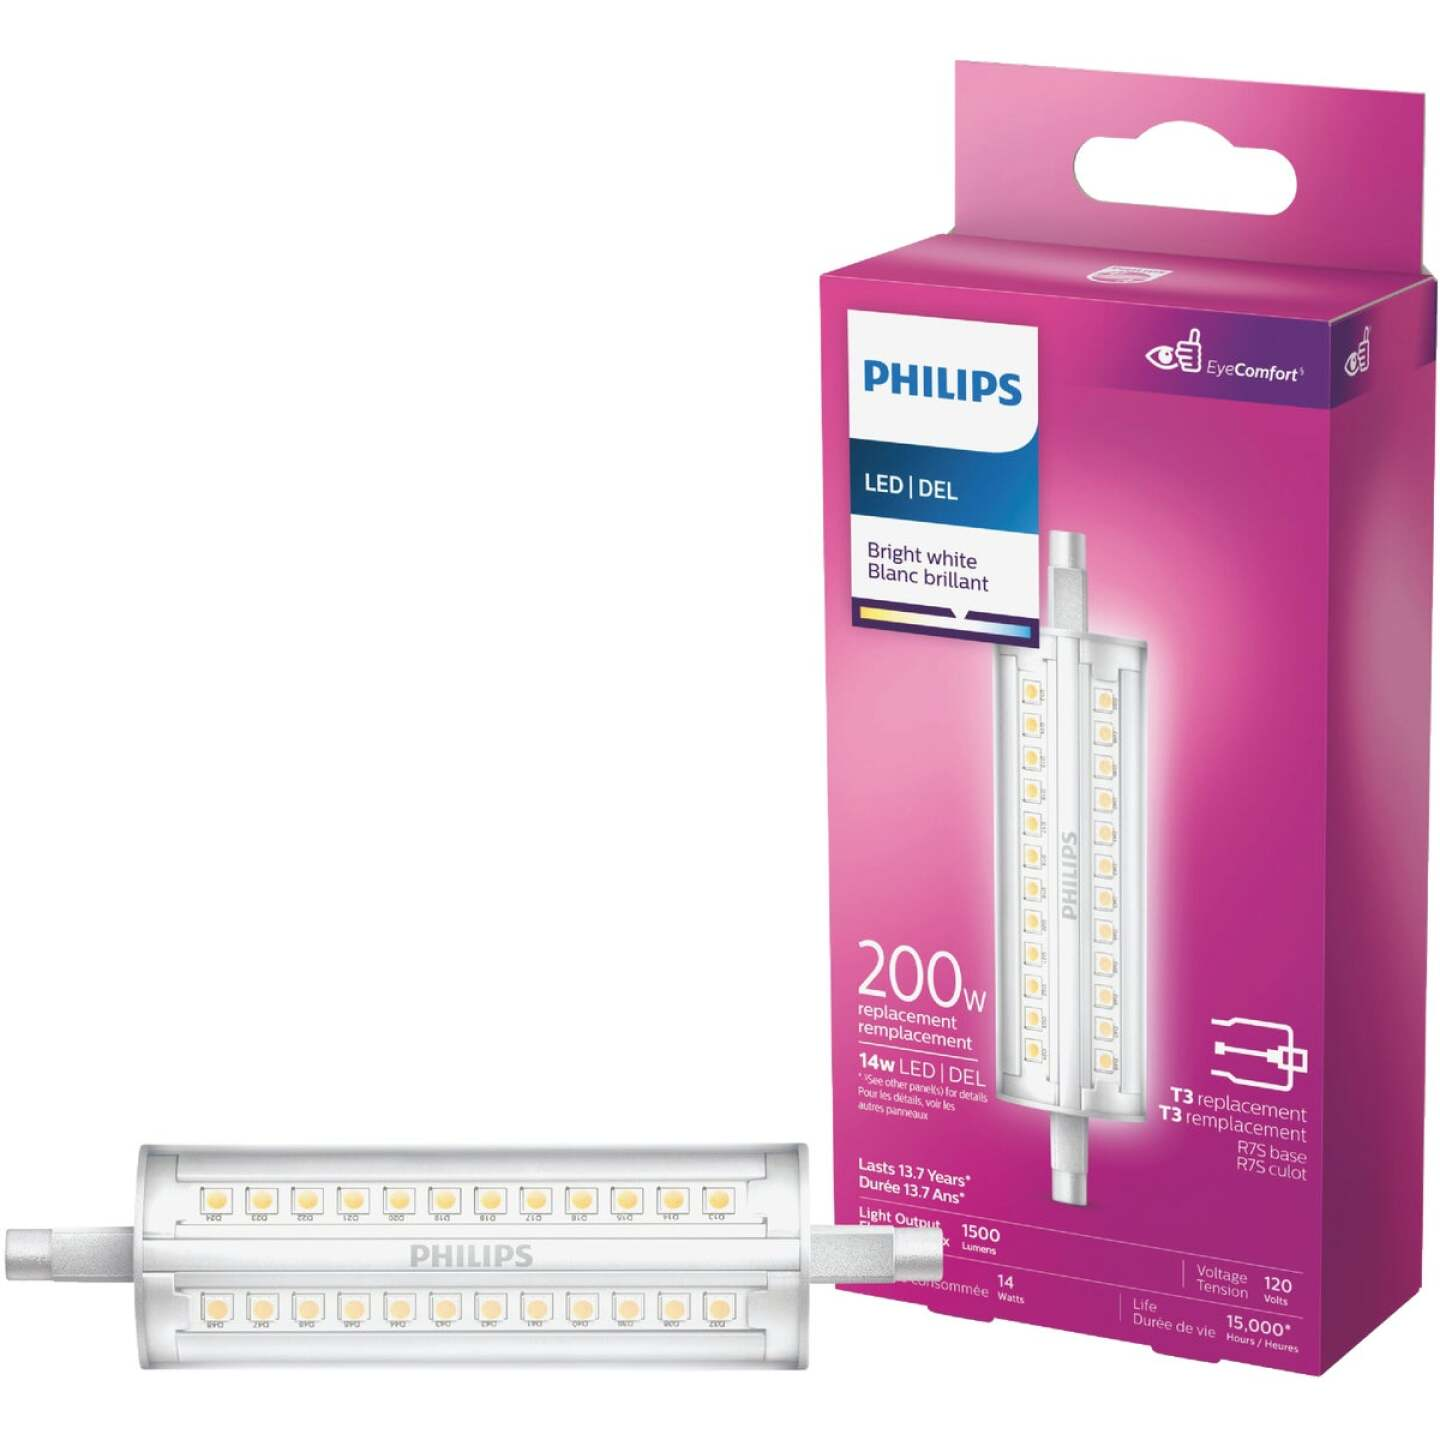 Philips 200W Equivalent Bright White T3 RSC Base LED Special Purpose Light Bulb Image 1